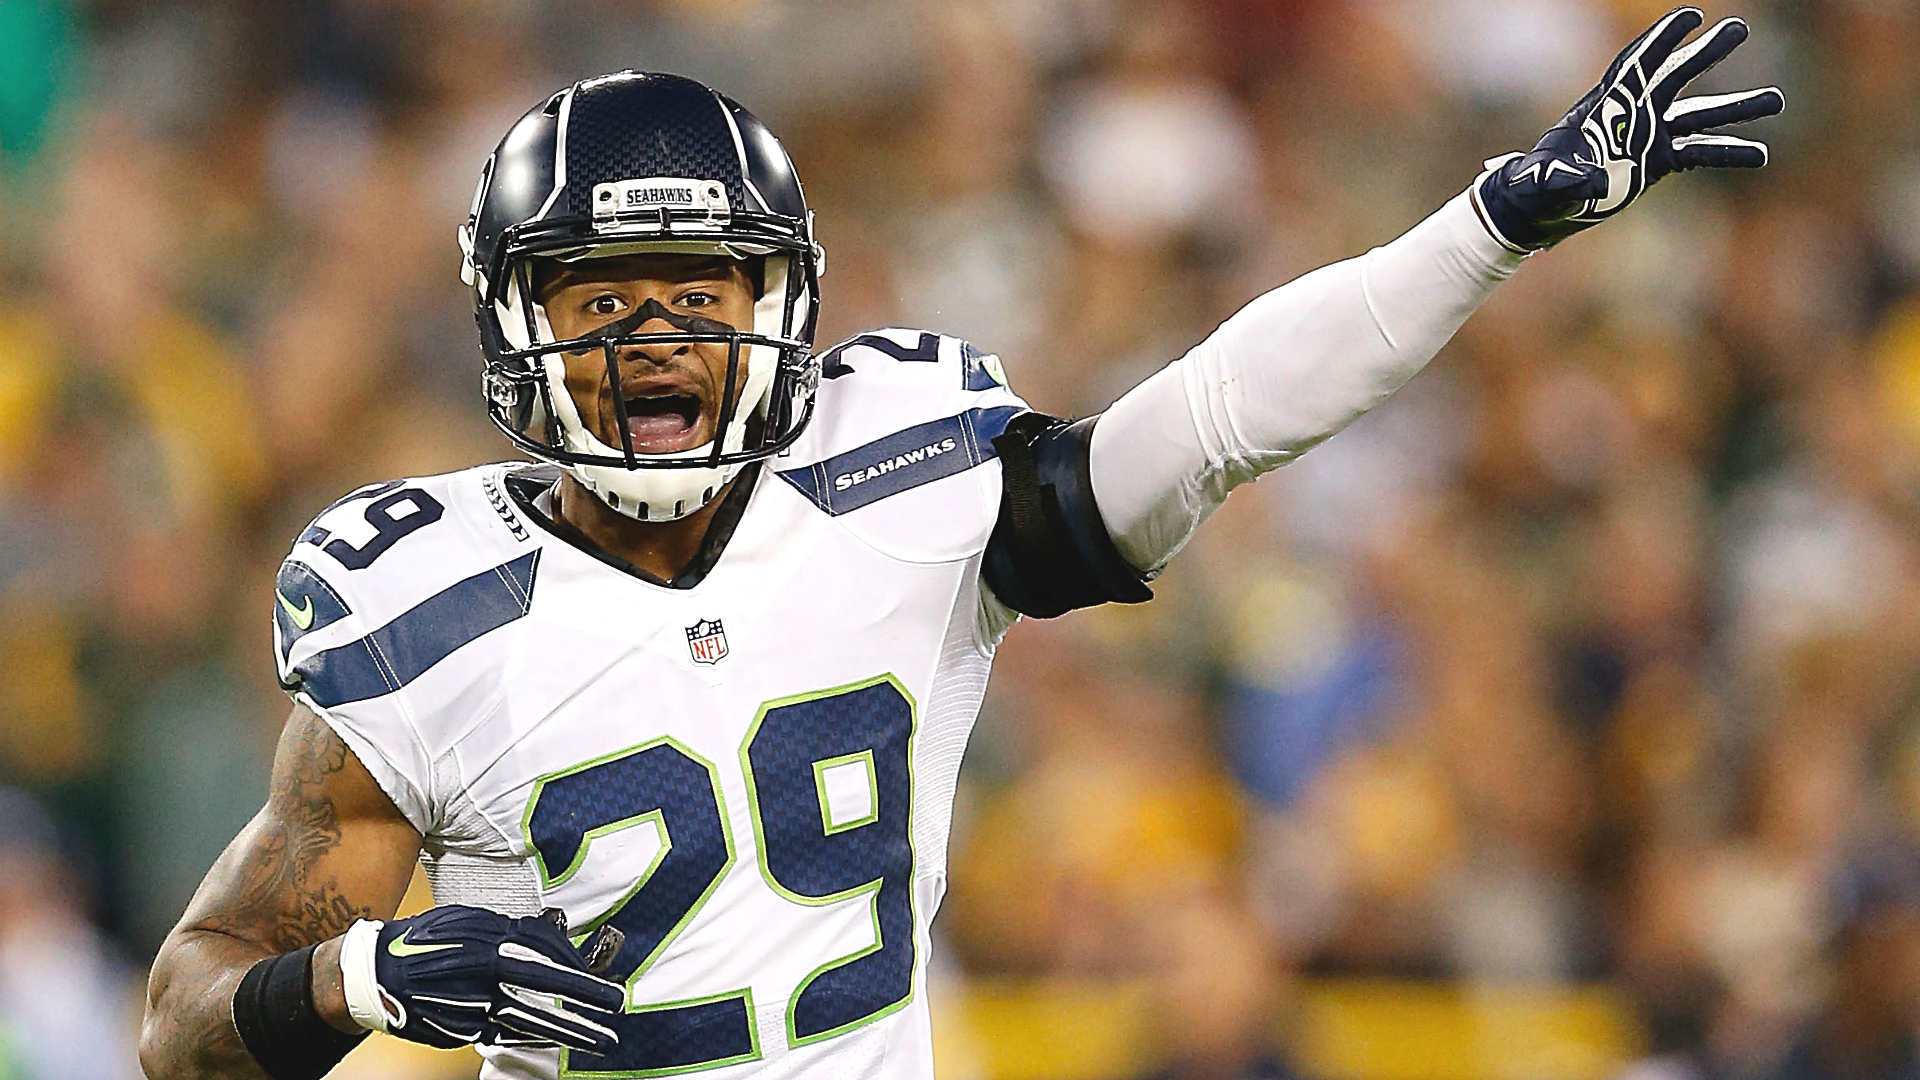 Earl Thomas way ahead of schedule in recovery from gruesome leg